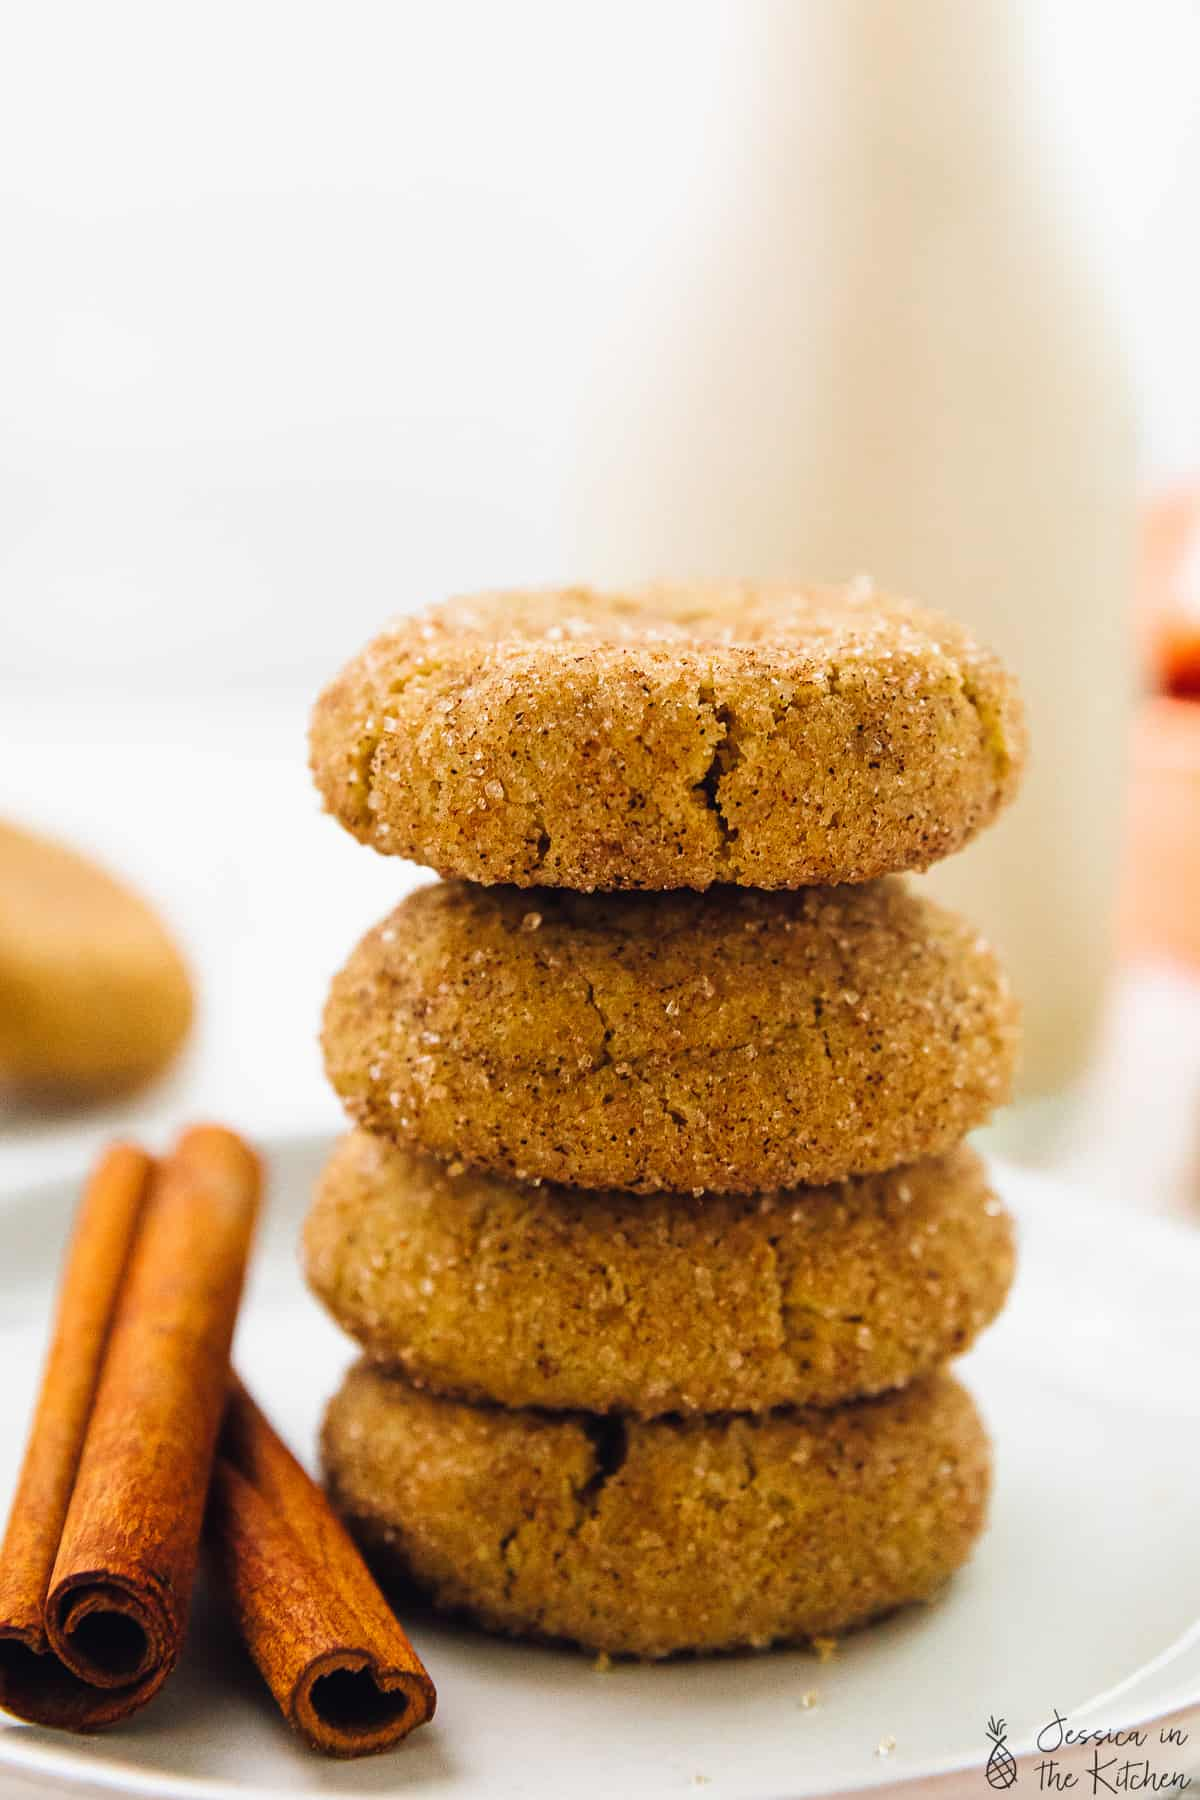 Snickerdoodle cookies in a stack of four on a plate with cinnamon sticks.